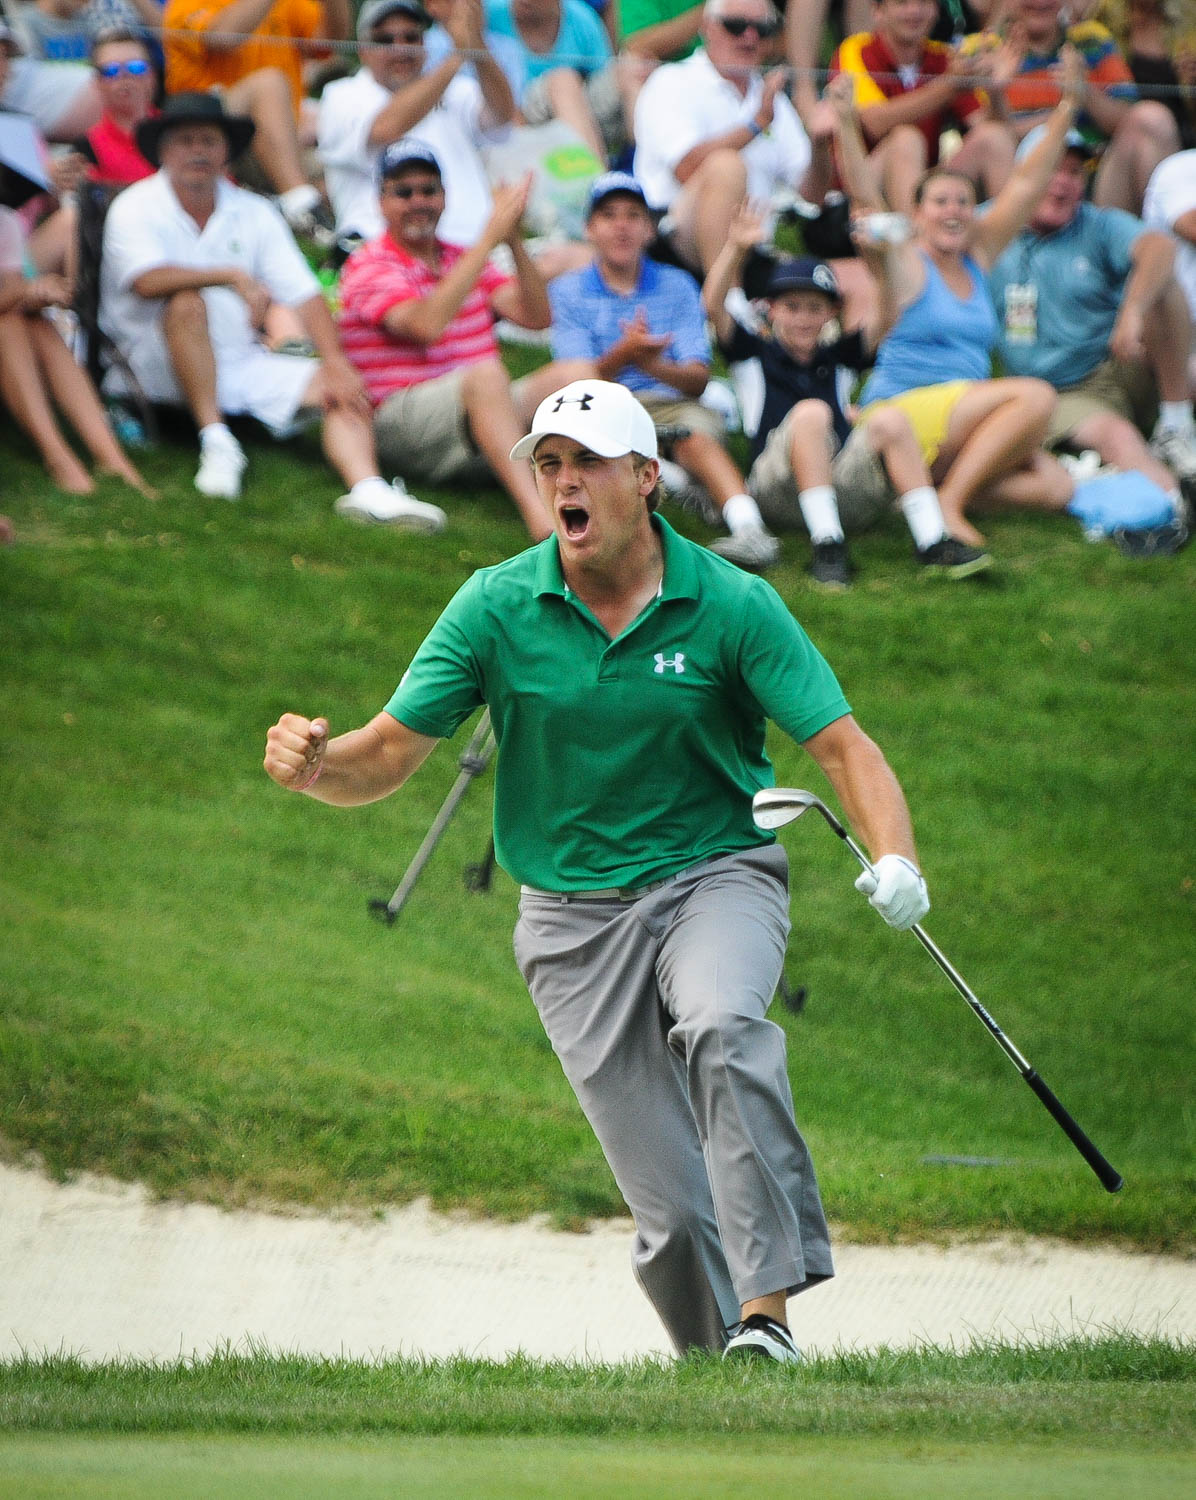 PGA Tour pro Jordan Spieth reacts to chipping in from the bunker for a birdie on the 18th hole during the final round of the John Deere Classic golf tournament in Silvis, Ill., Sunday, July 14, 2013. Spieth won the tournament on the 5th playoff hole. (Todd Mizener - Dispatch/Argus)